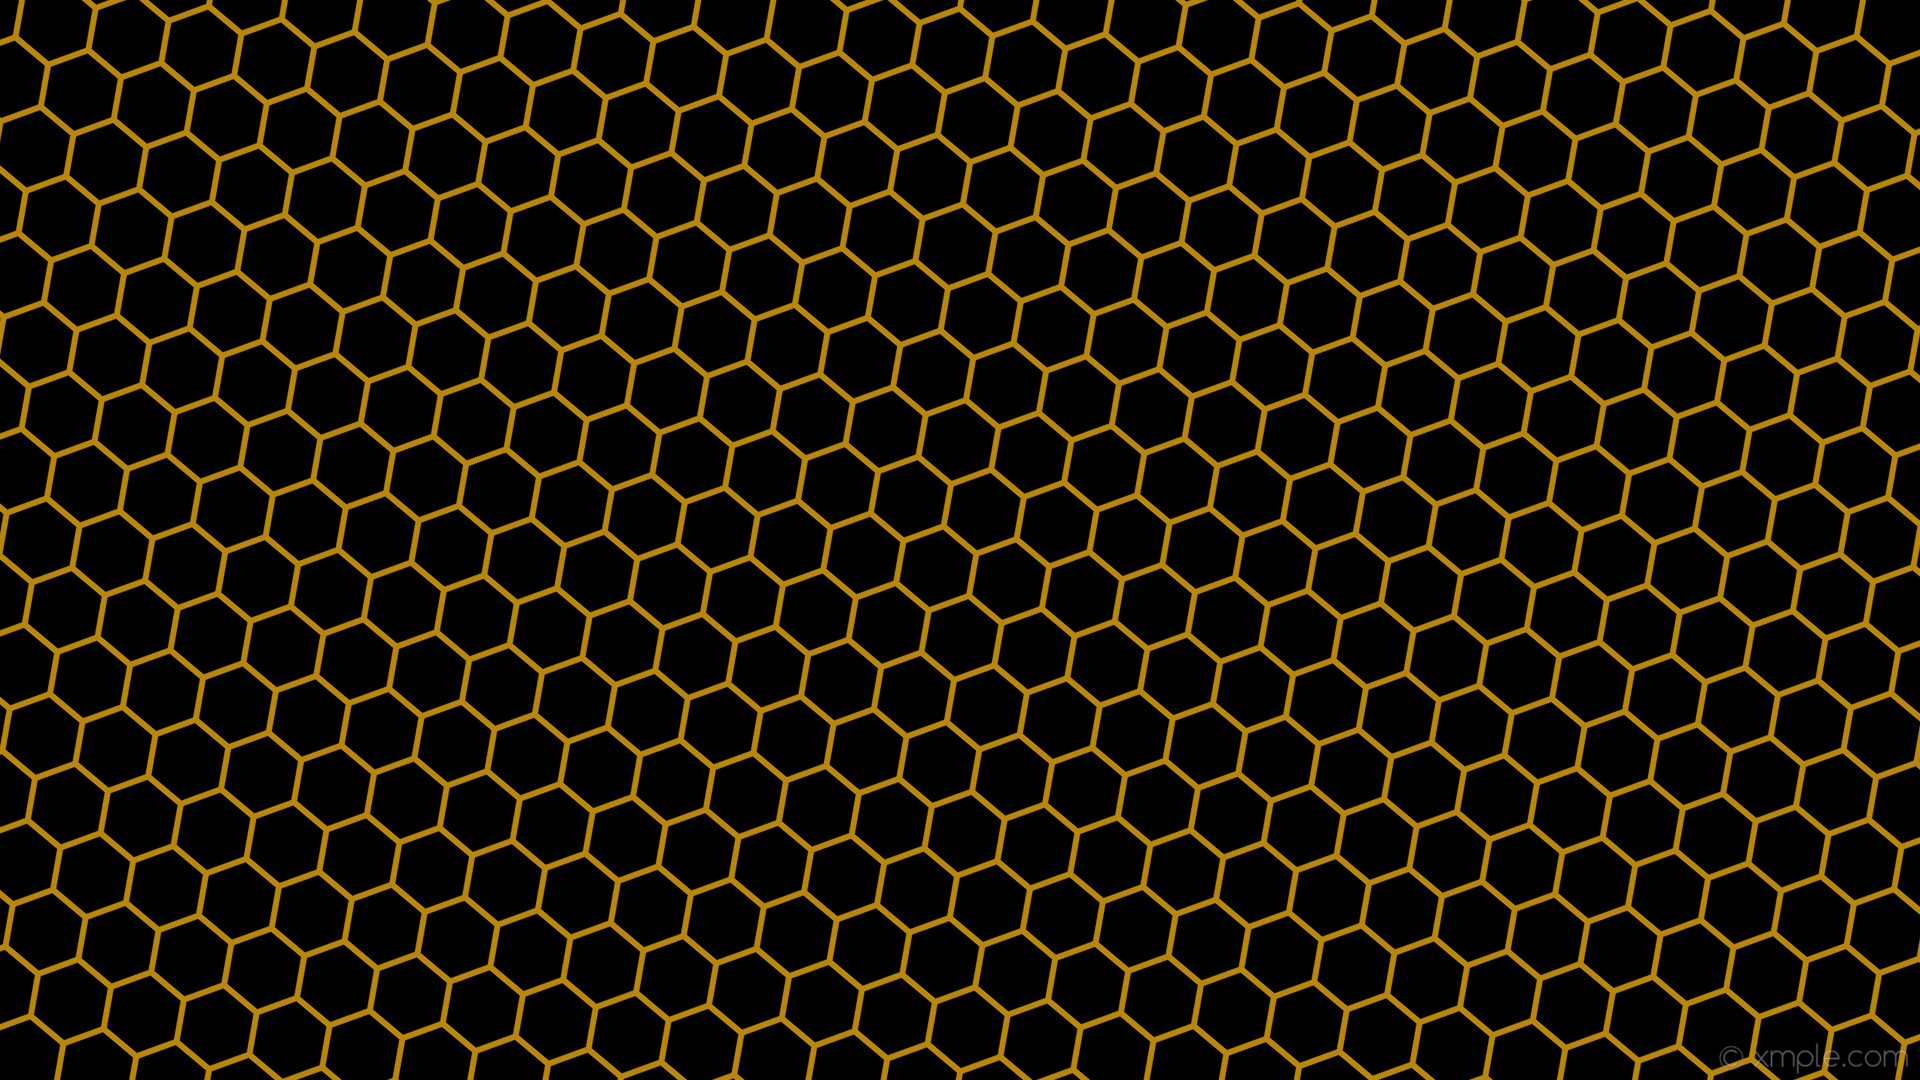 Res: 1920x1080, Wallpaper honeycomb black beehive hexagon brown #000000 # ... Dark  Honeycomb Wallpaper